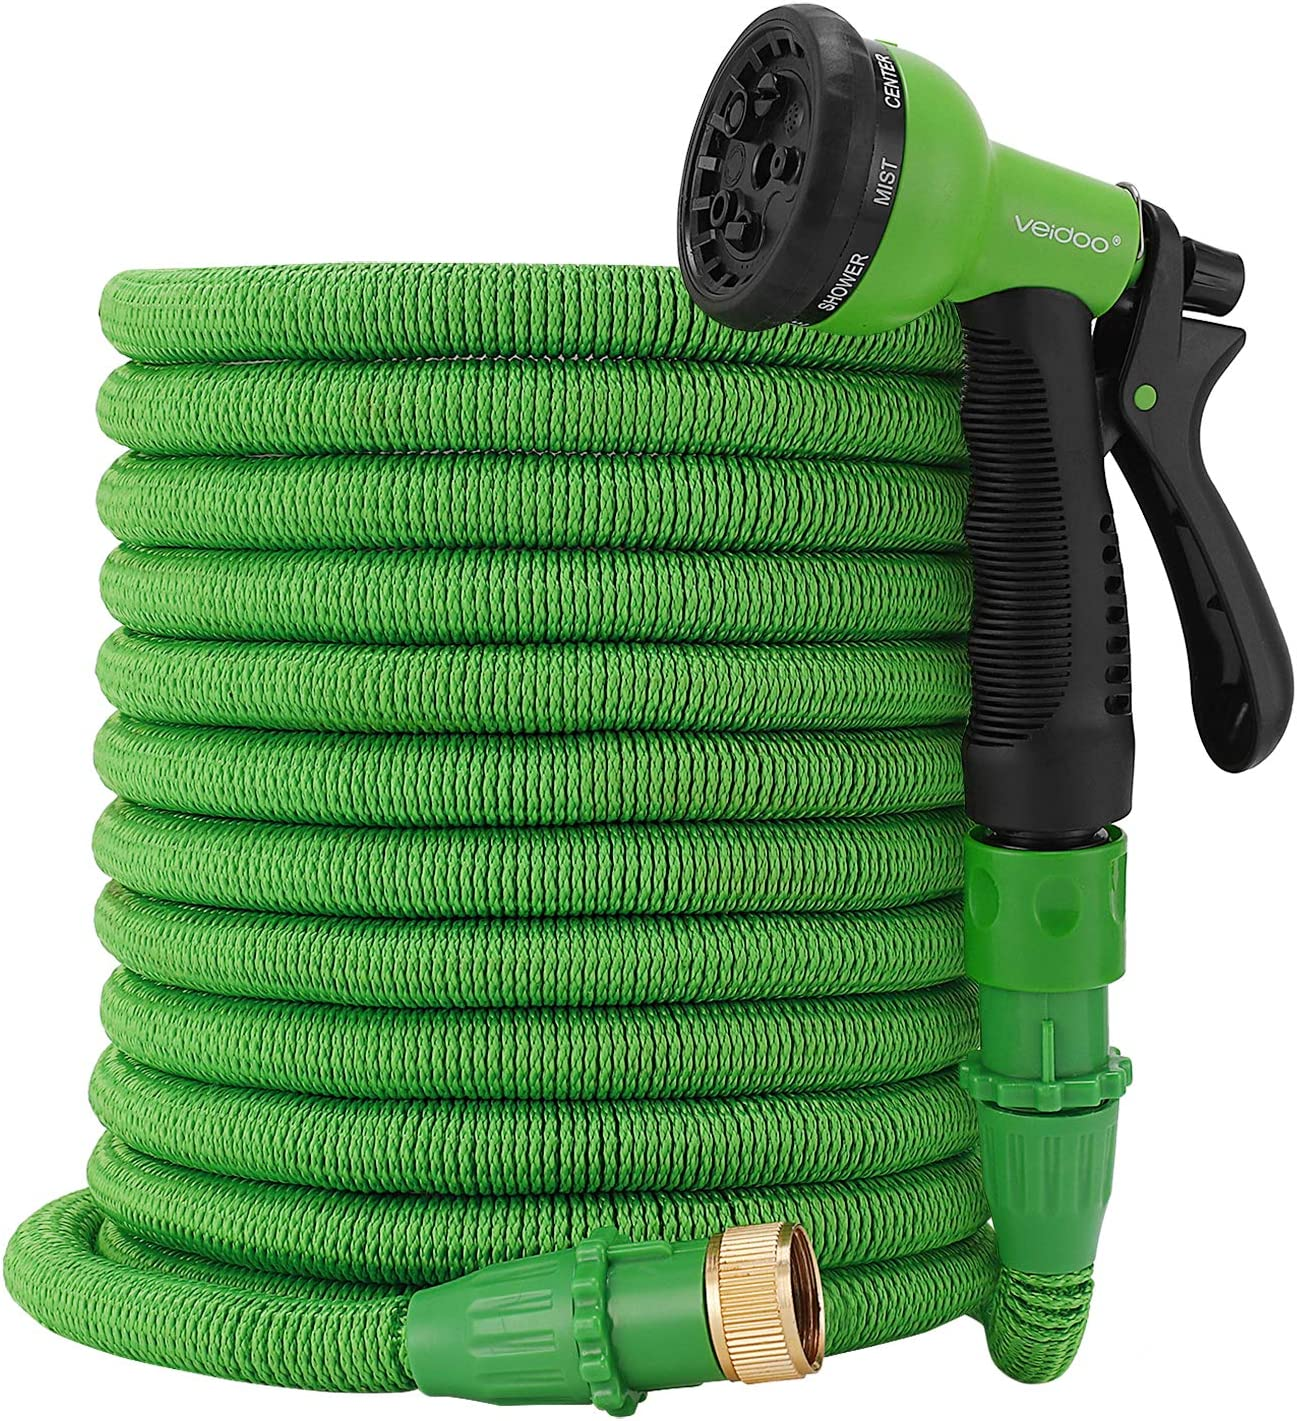 Veidoo Garden Hose,Expandable Hose,75ft with 8 Pattern Spray Nozzle,No Leaking with Innovation Joint, High Pressure Flexible for All Your Watering,Car Wash Use,Shower pet (Green)